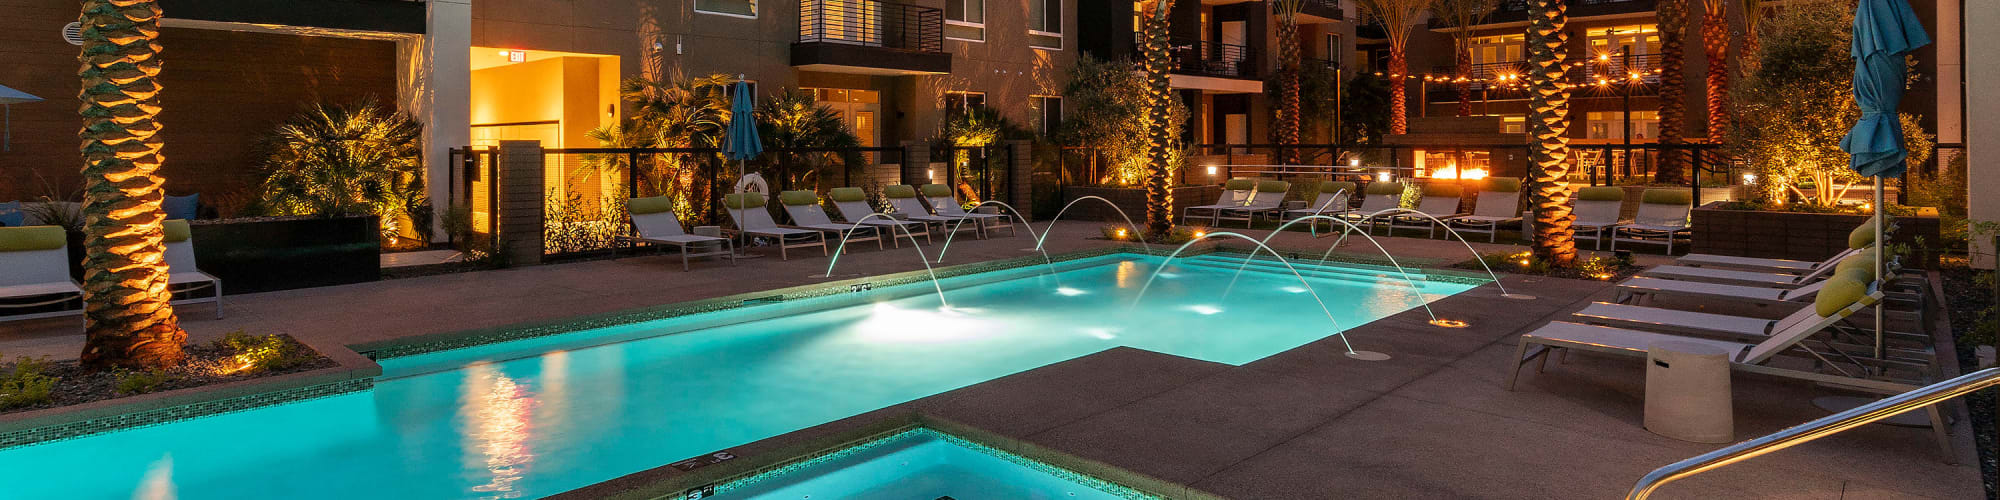 Amenities at Carter in Scottsdale, Arizona